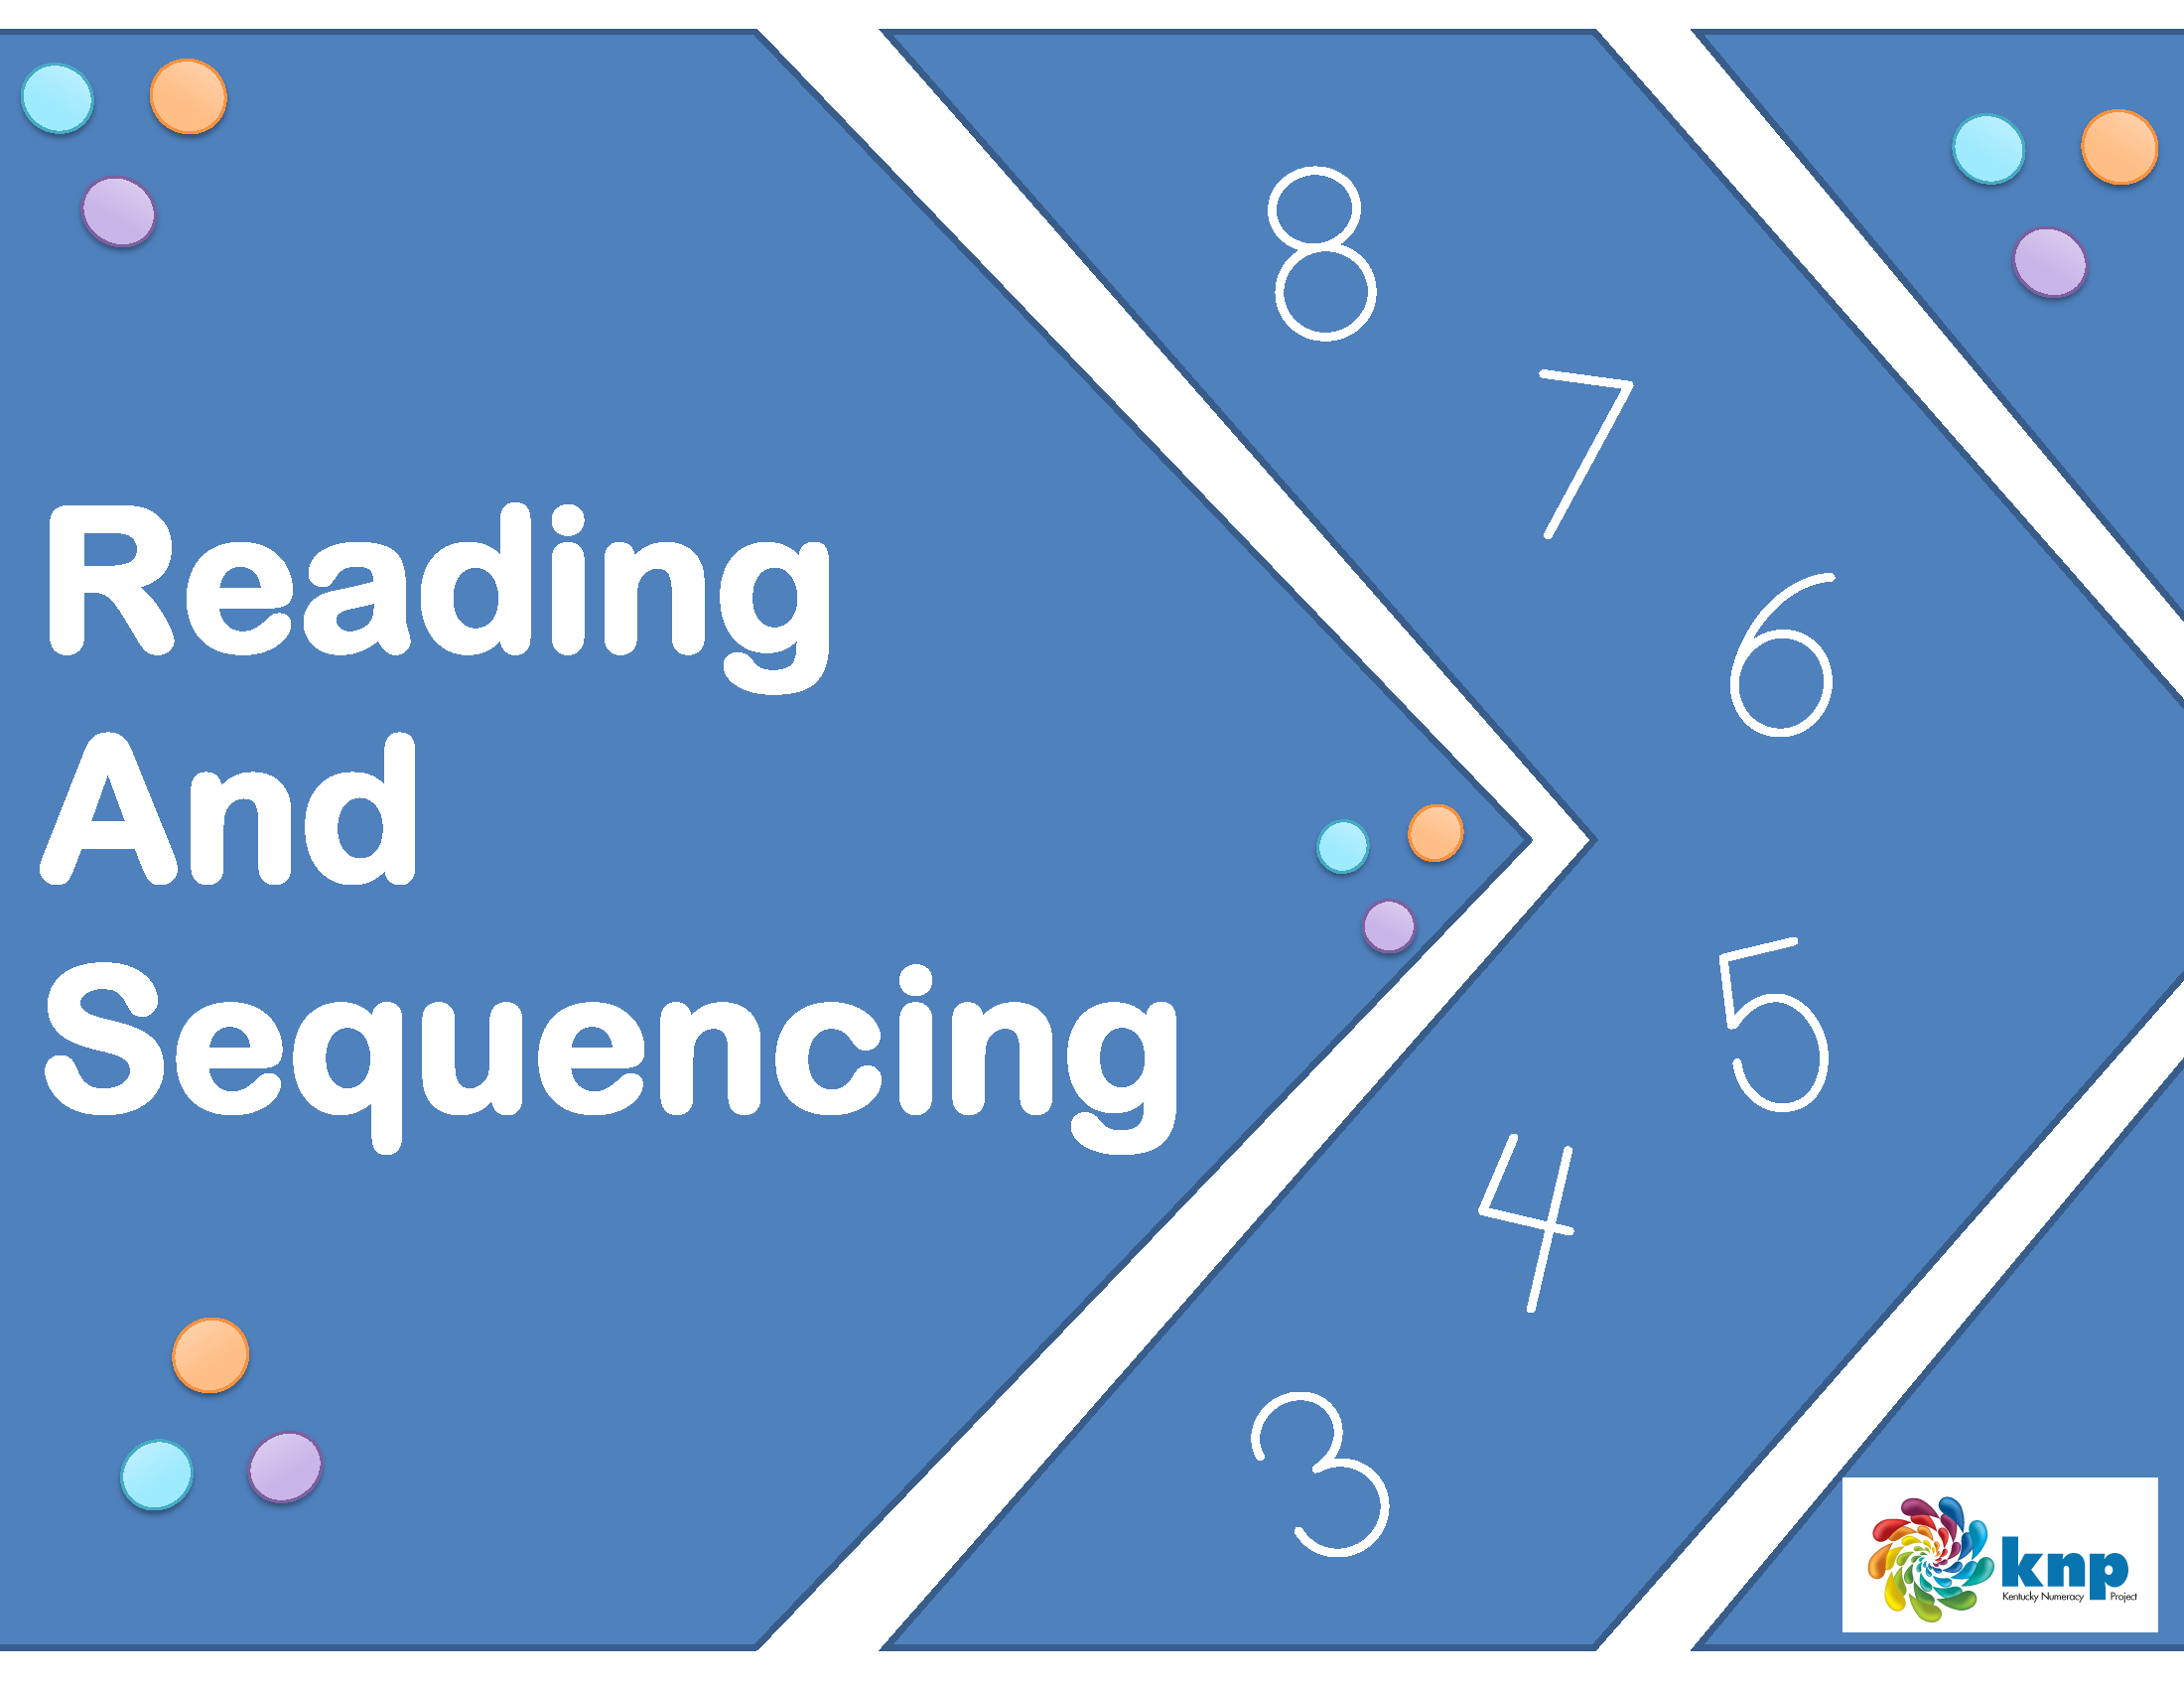 Reading And Sequencing